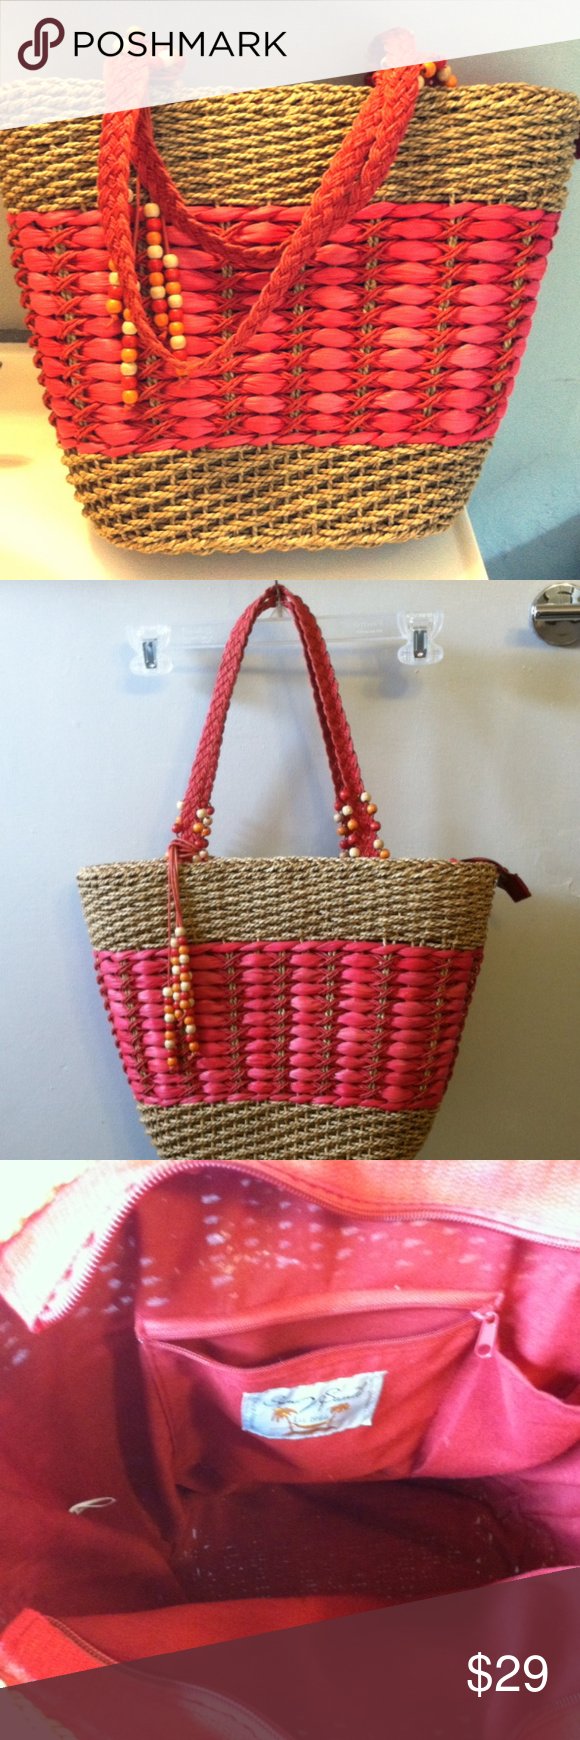 SUN 'N' SAND Natural & Red Straw Shoulder Tote Bag SUN 'N' SAND Natural & Red Straw Shoulder or Tote Bag Woven red handles with wooden beads  Zips closed 1 interior zip pocket, 1 open 12  H 16W (widest point) 6 Deep Strap drop 9 1/2 Sun n Sand Bags #woodentotebag